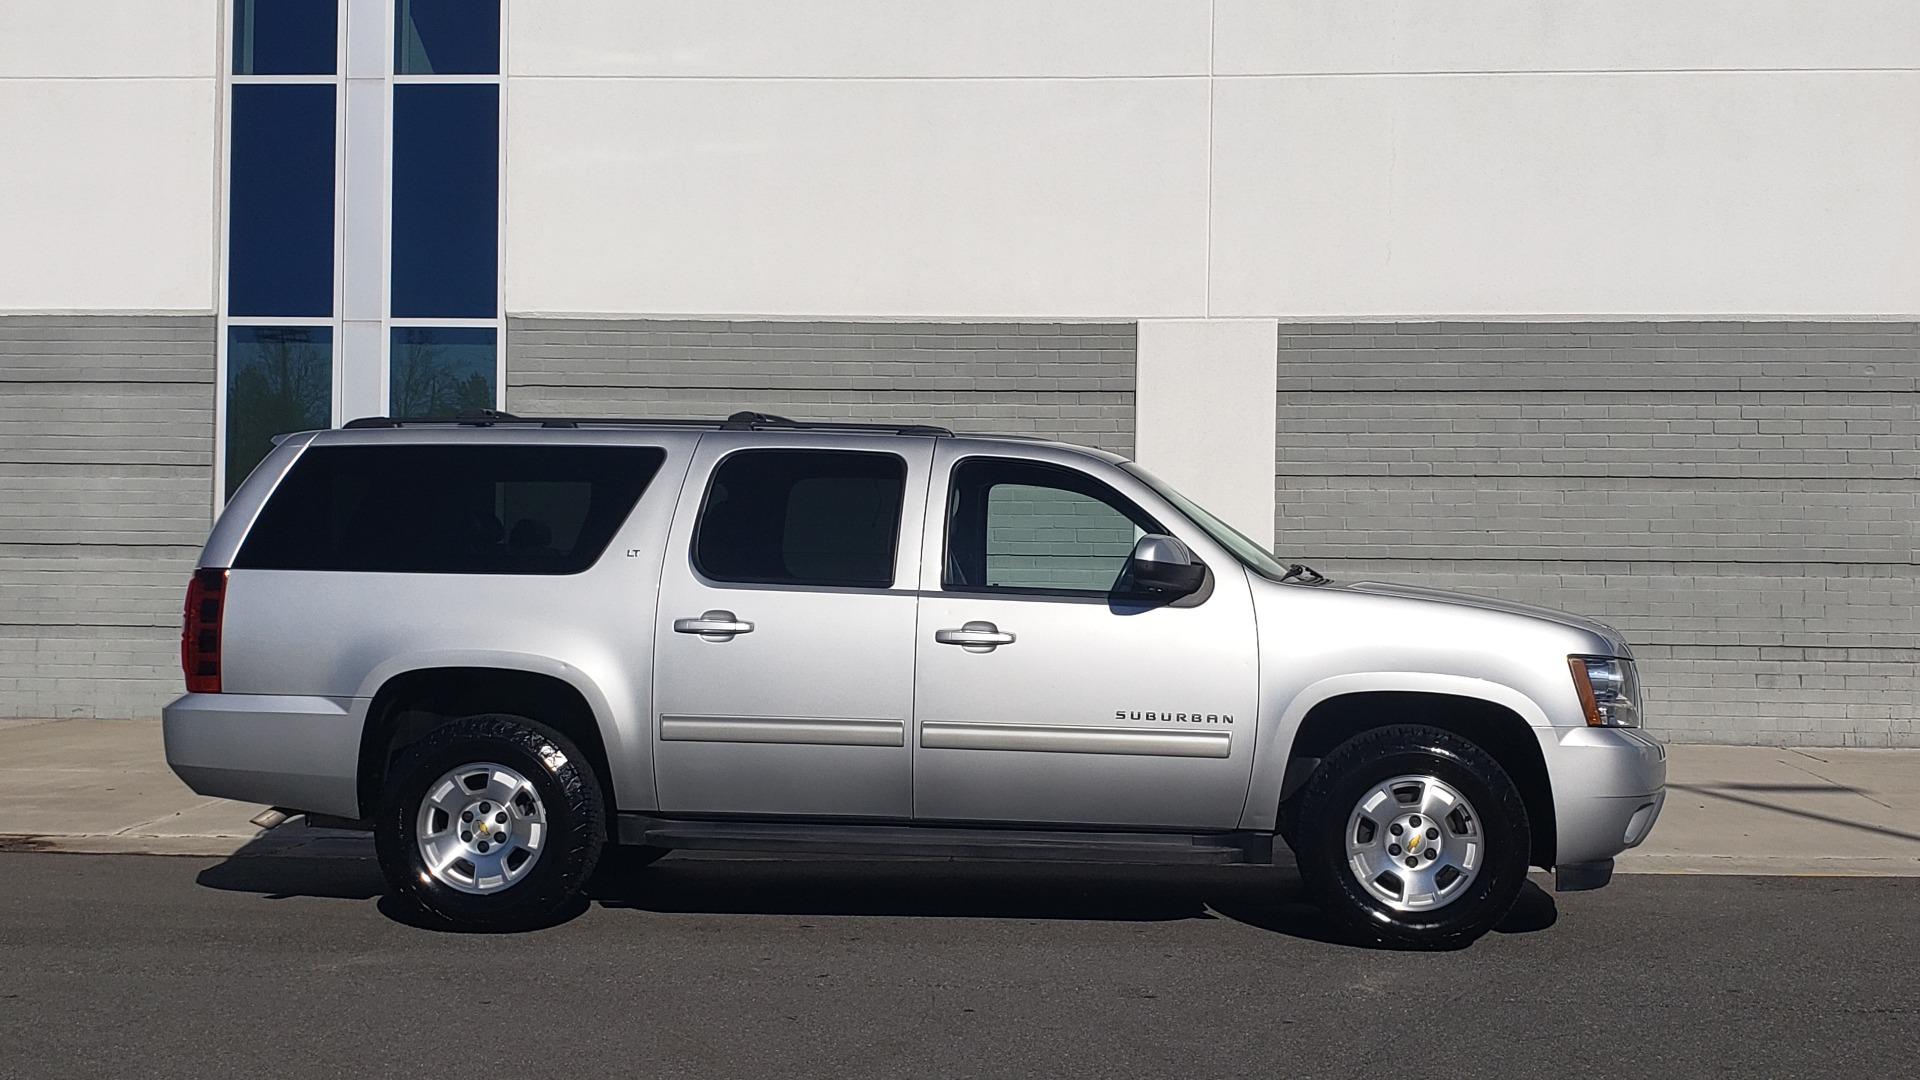 Used 2013 Chevrolet SUBURBAN LT / 2WD / 5.3L V8 / 6-SPD AUTO / LEATHER 3-ROW SEATS for sale Sold at Formula Imports in Charlotte NC 28227 7